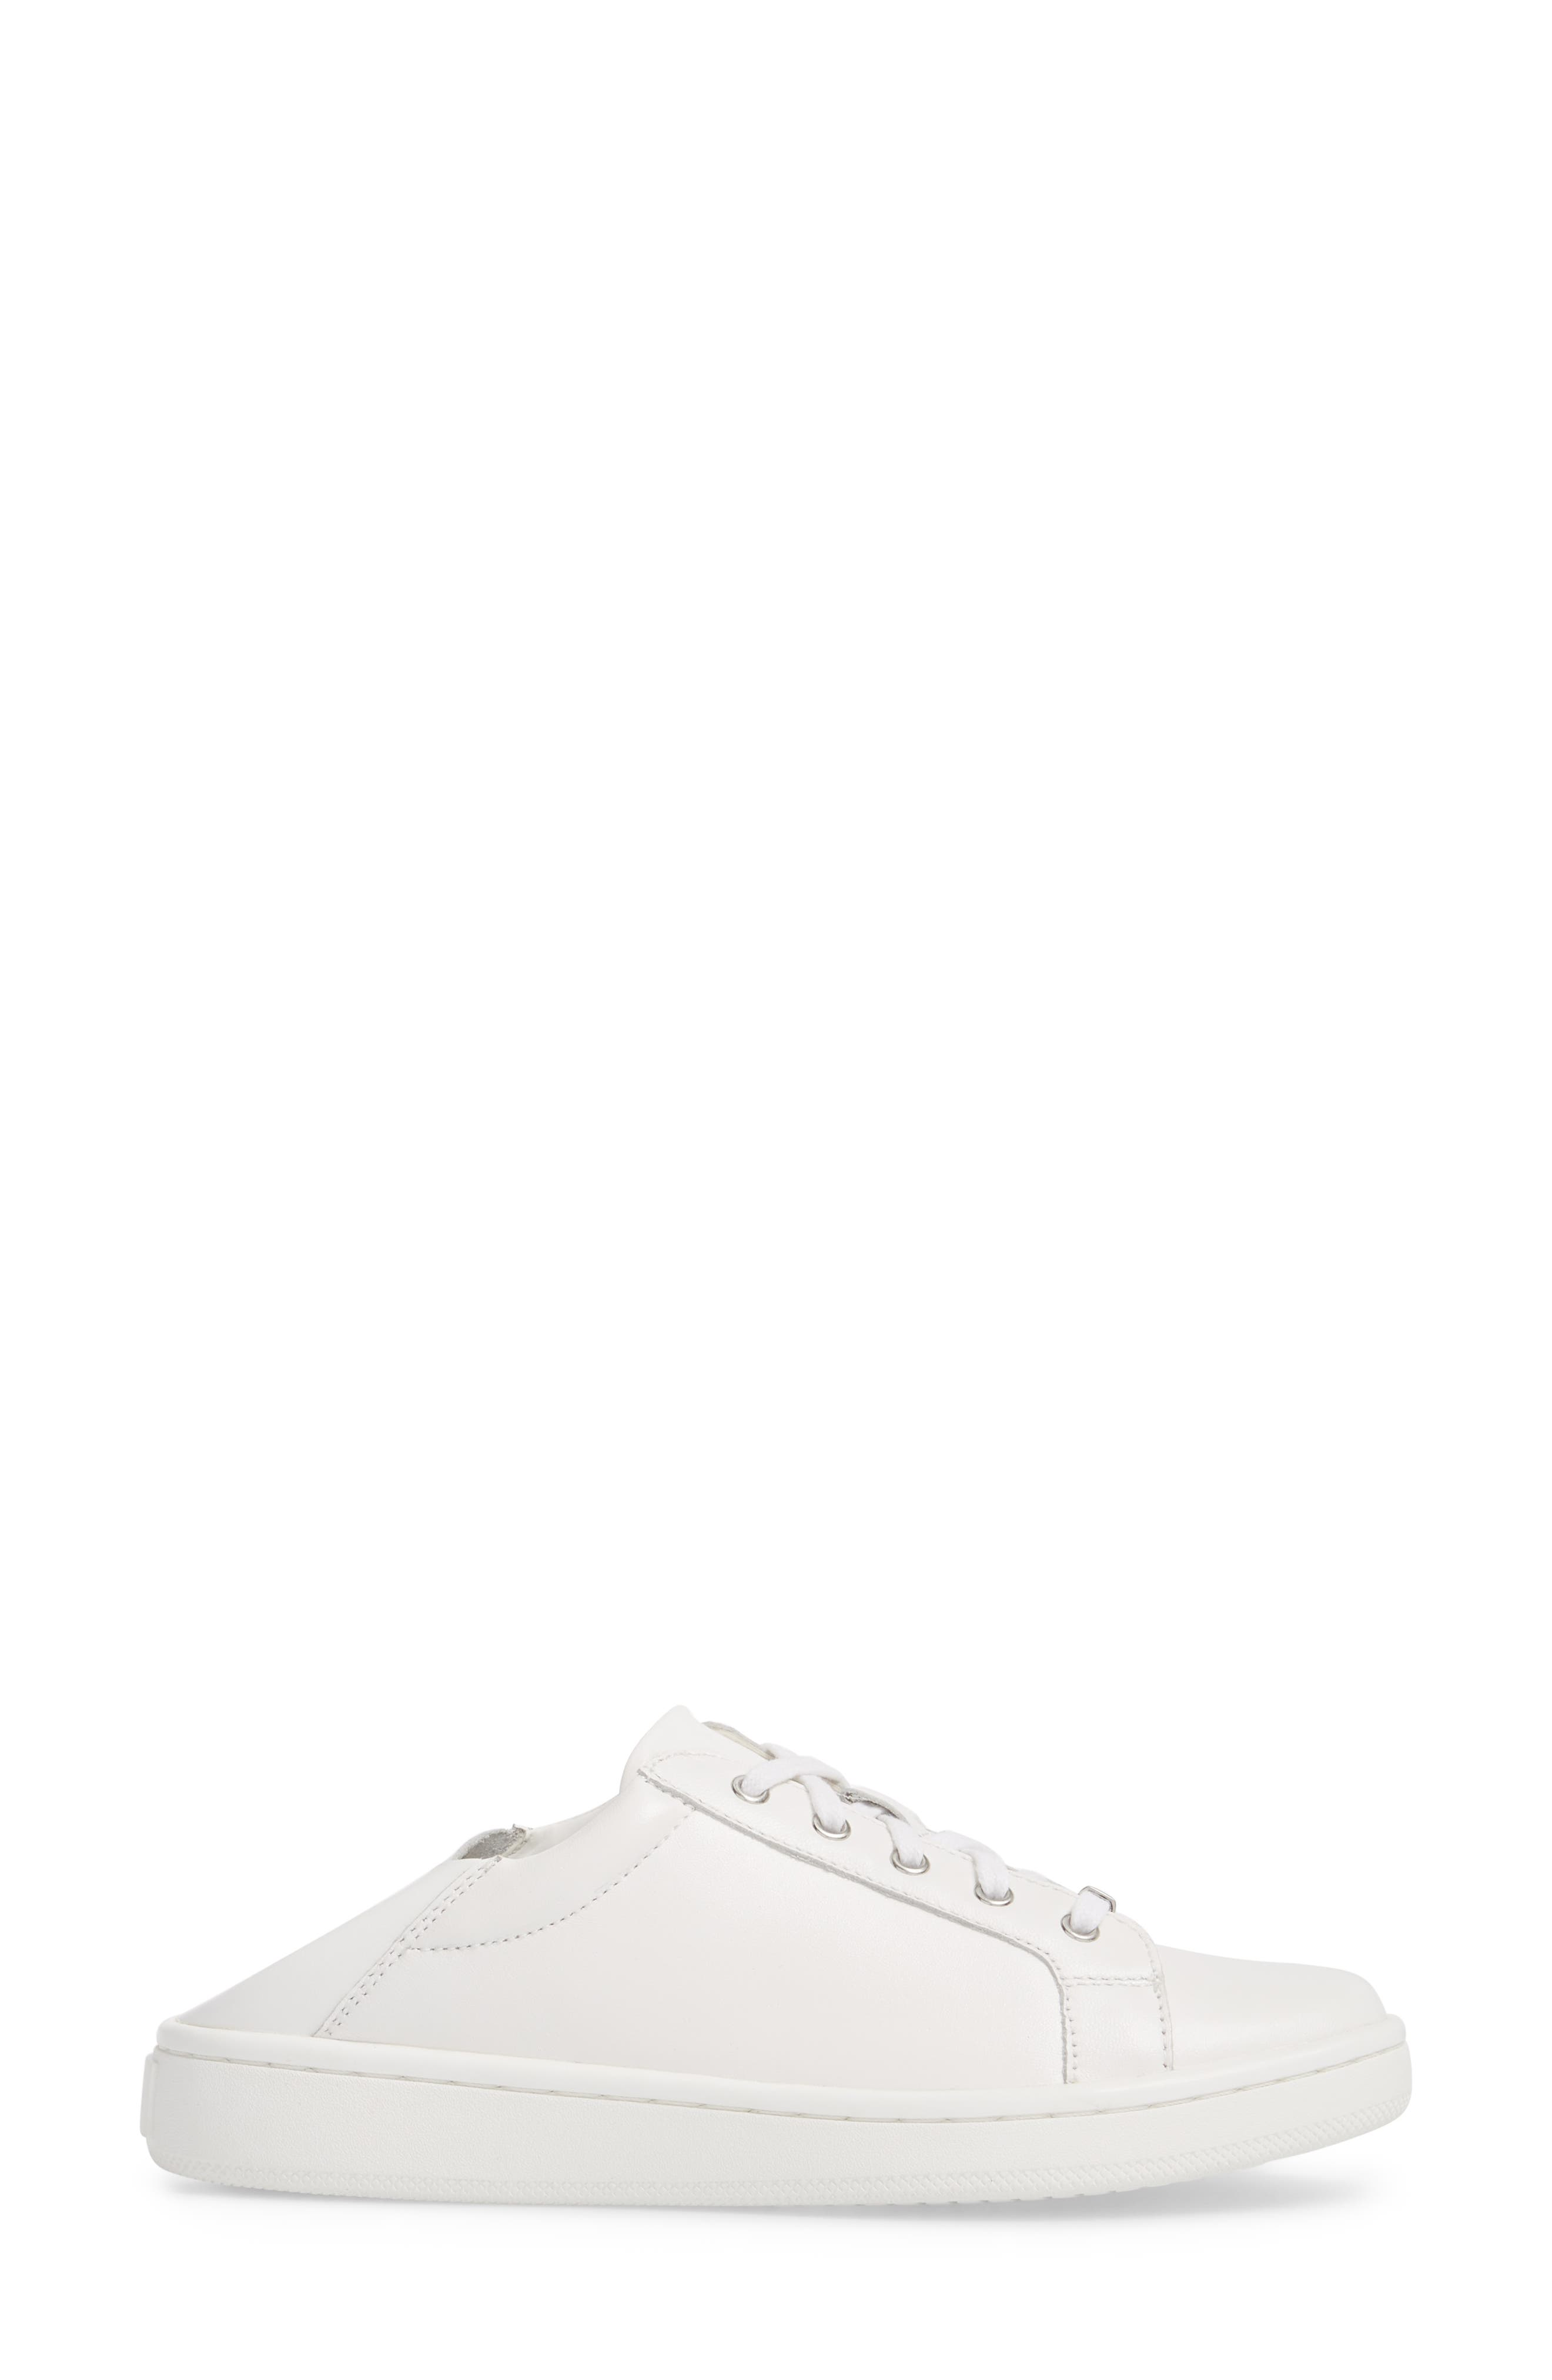 Danica Convertible Sneaker,                             Alternate thumbnail 3, color,                             White/ White Leather